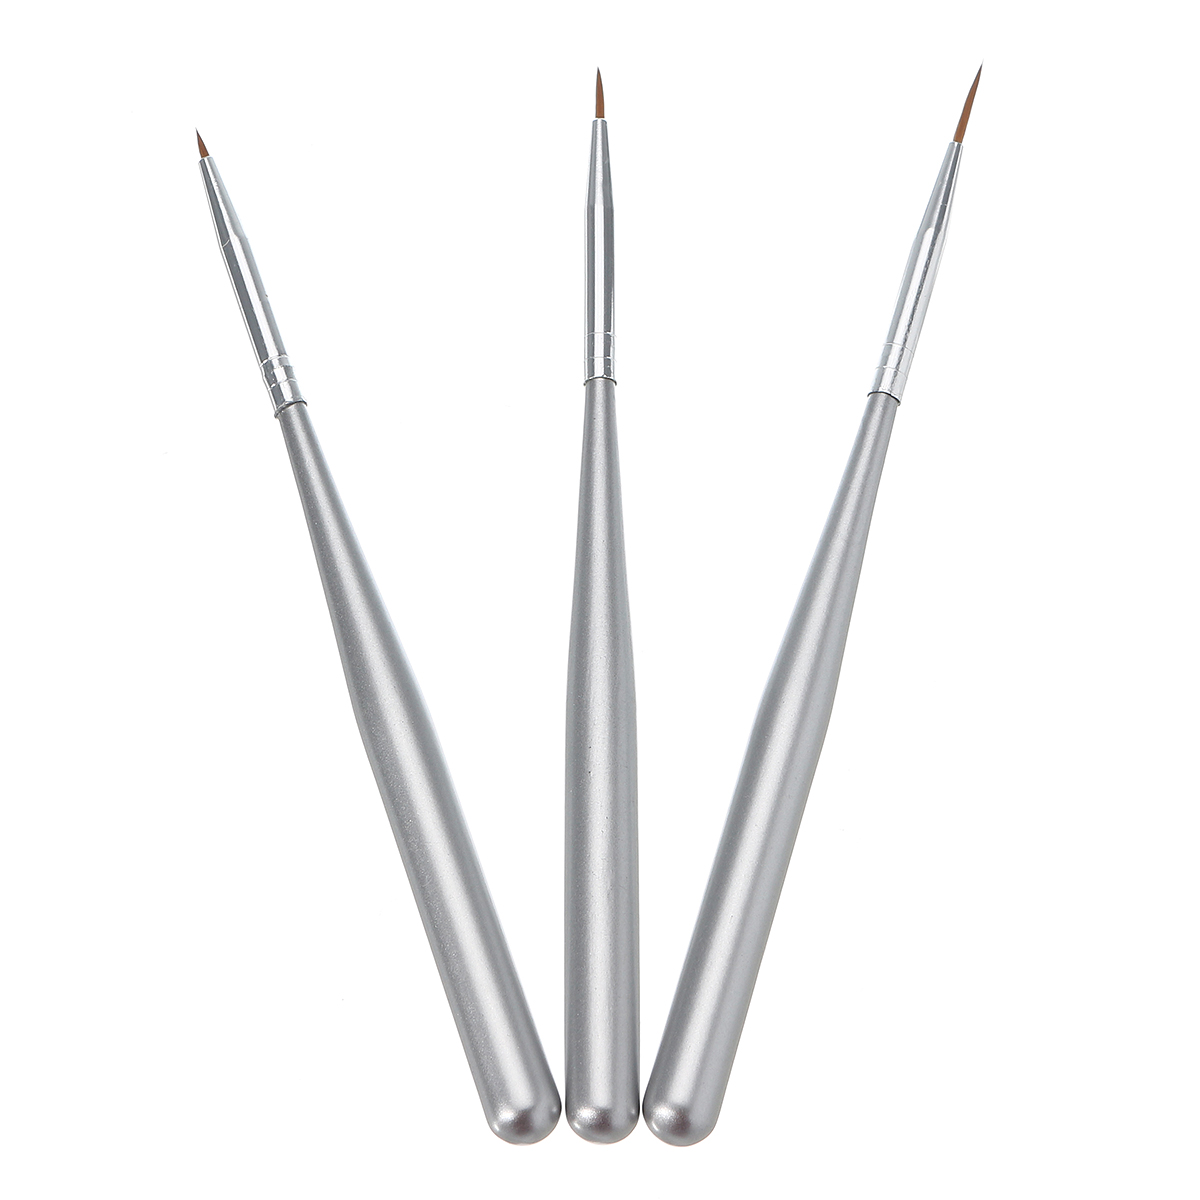 3pcs Nail Art Liner Brushes